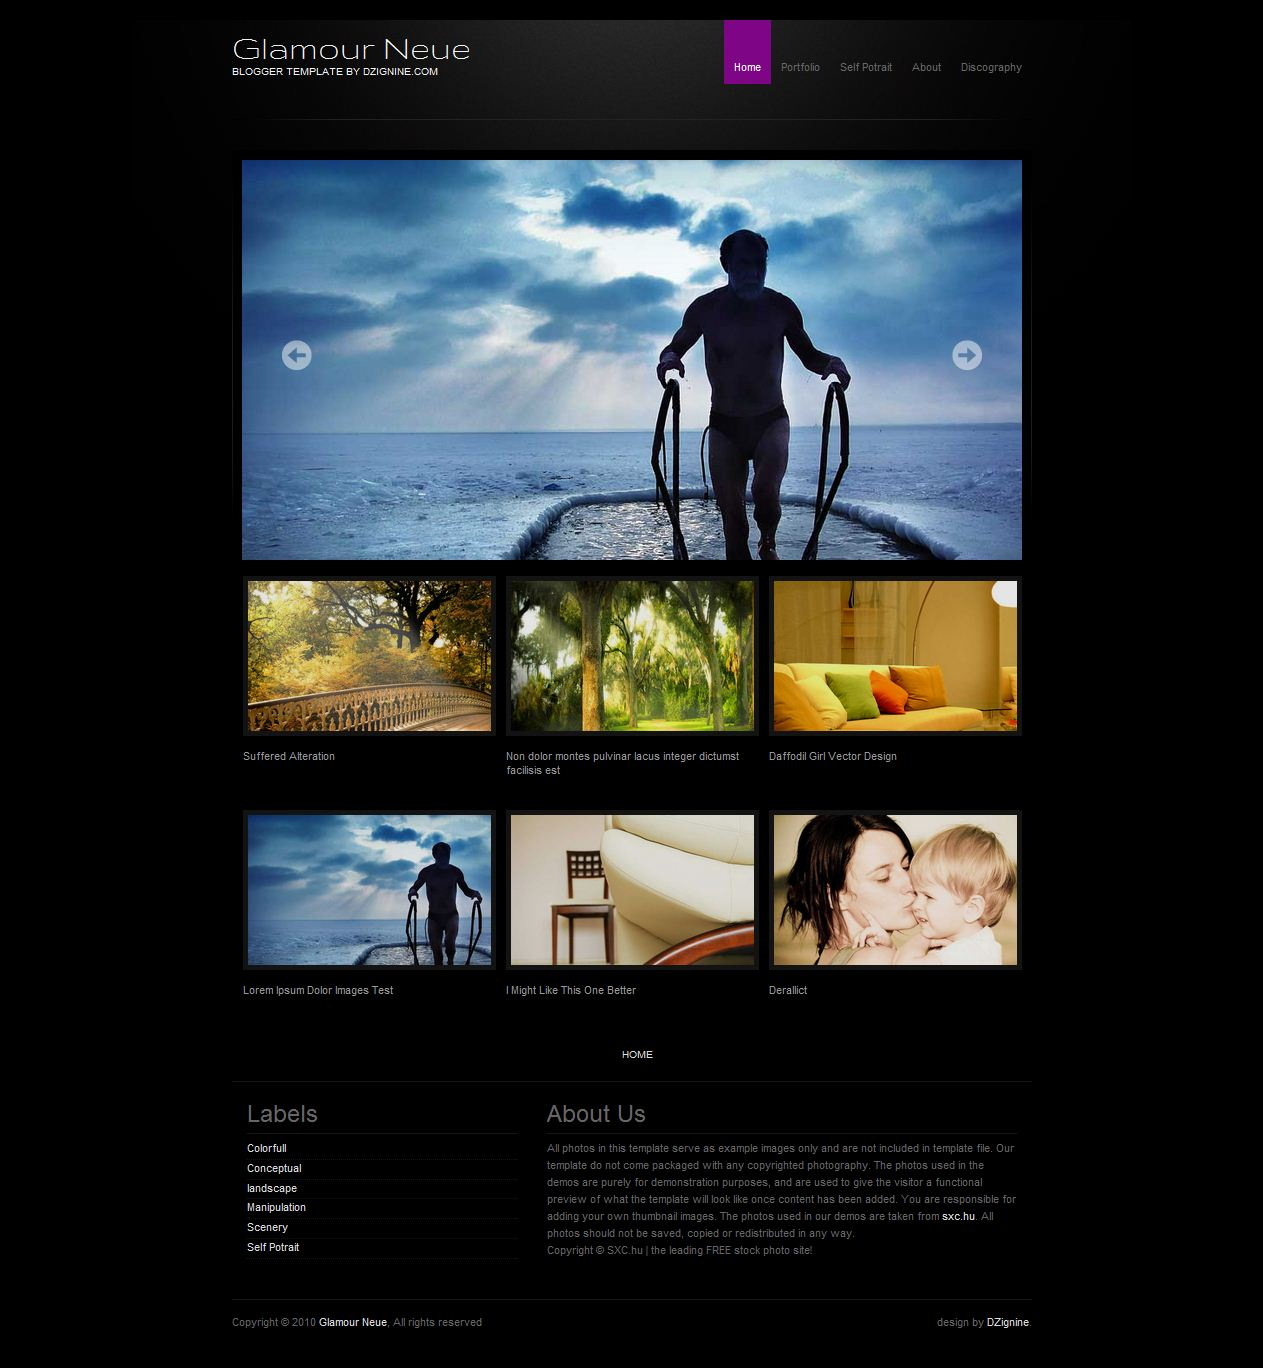 photo gallery html template free download - mumpung gratis template khusus blogger wallpaper mas